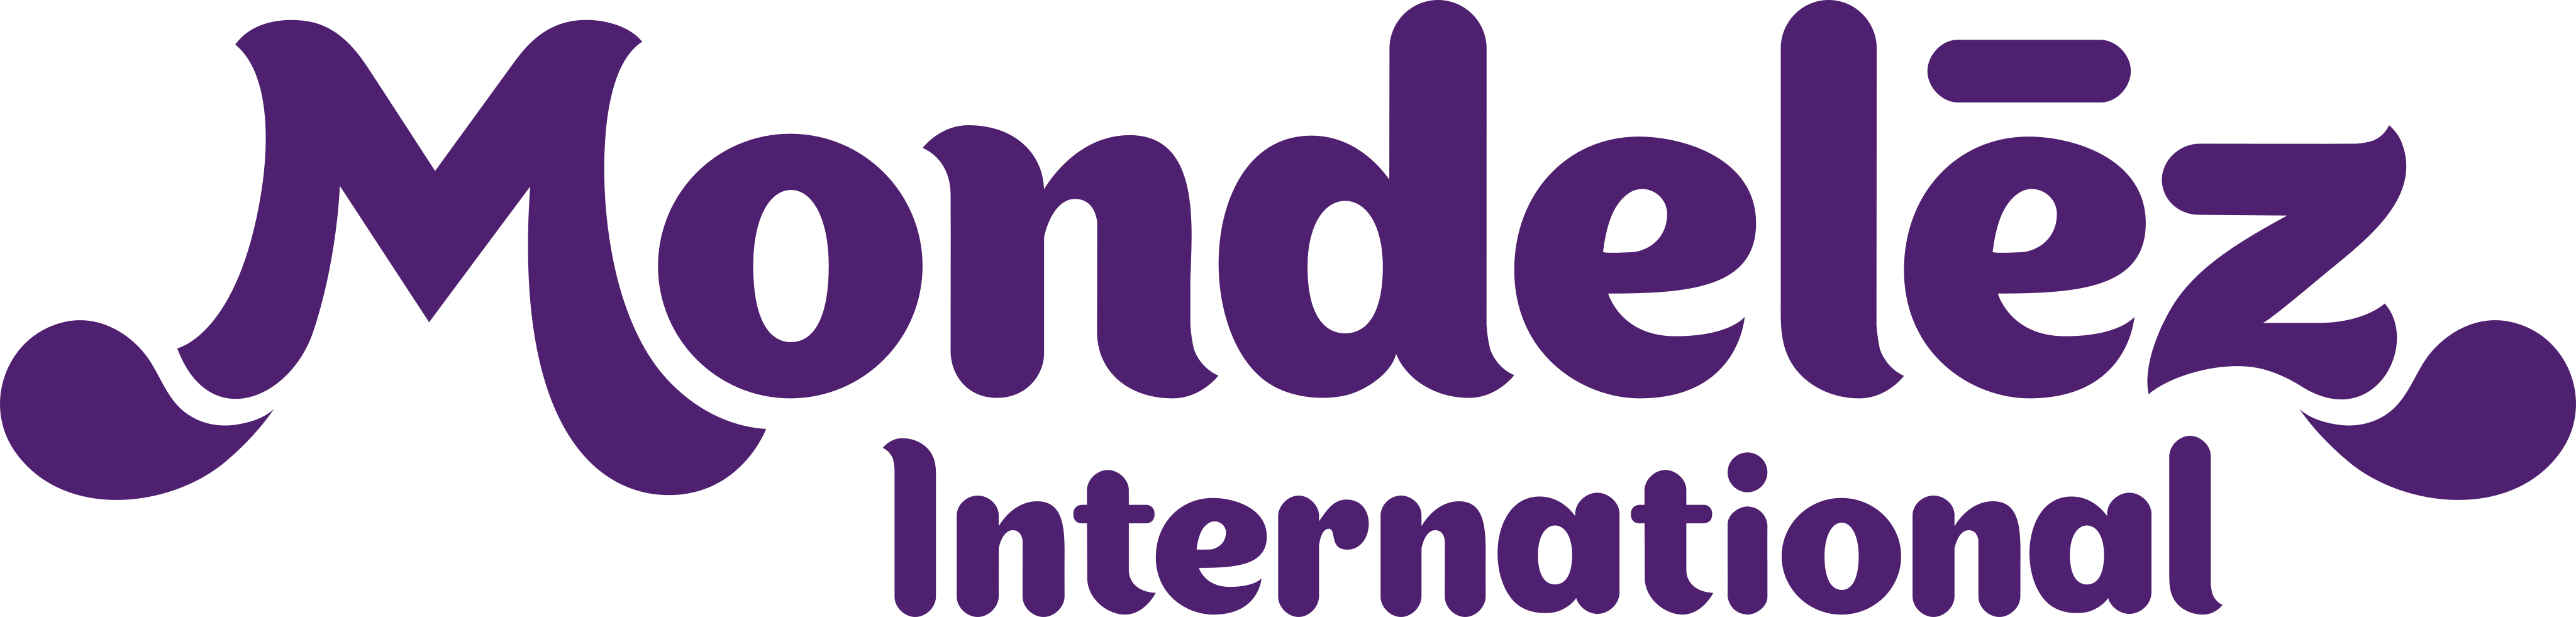 mondelez international logo - Mondelēz International Logo